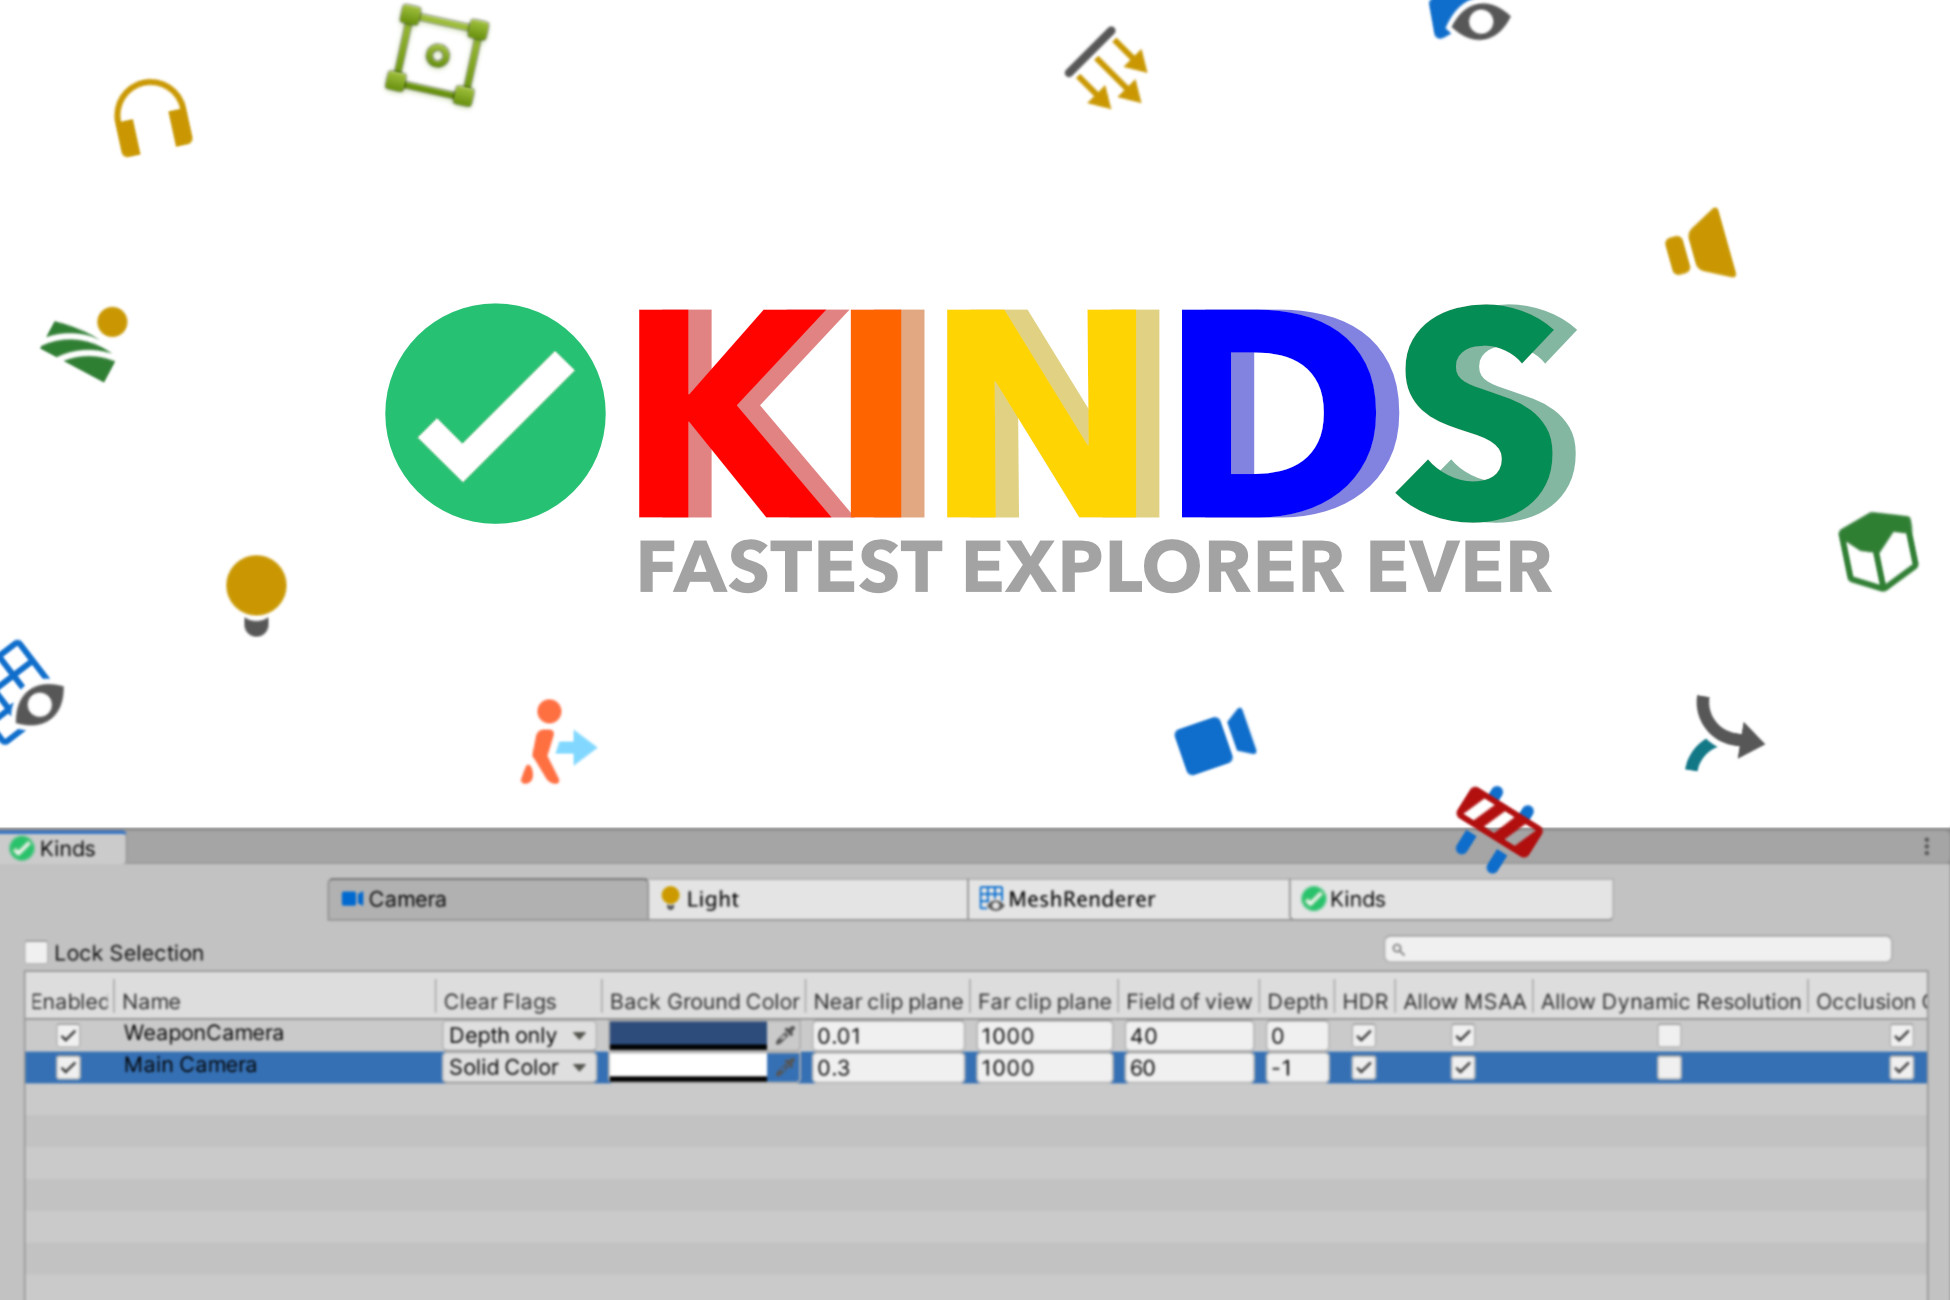 Kinds [Beta] - Fastest Explorer Ever